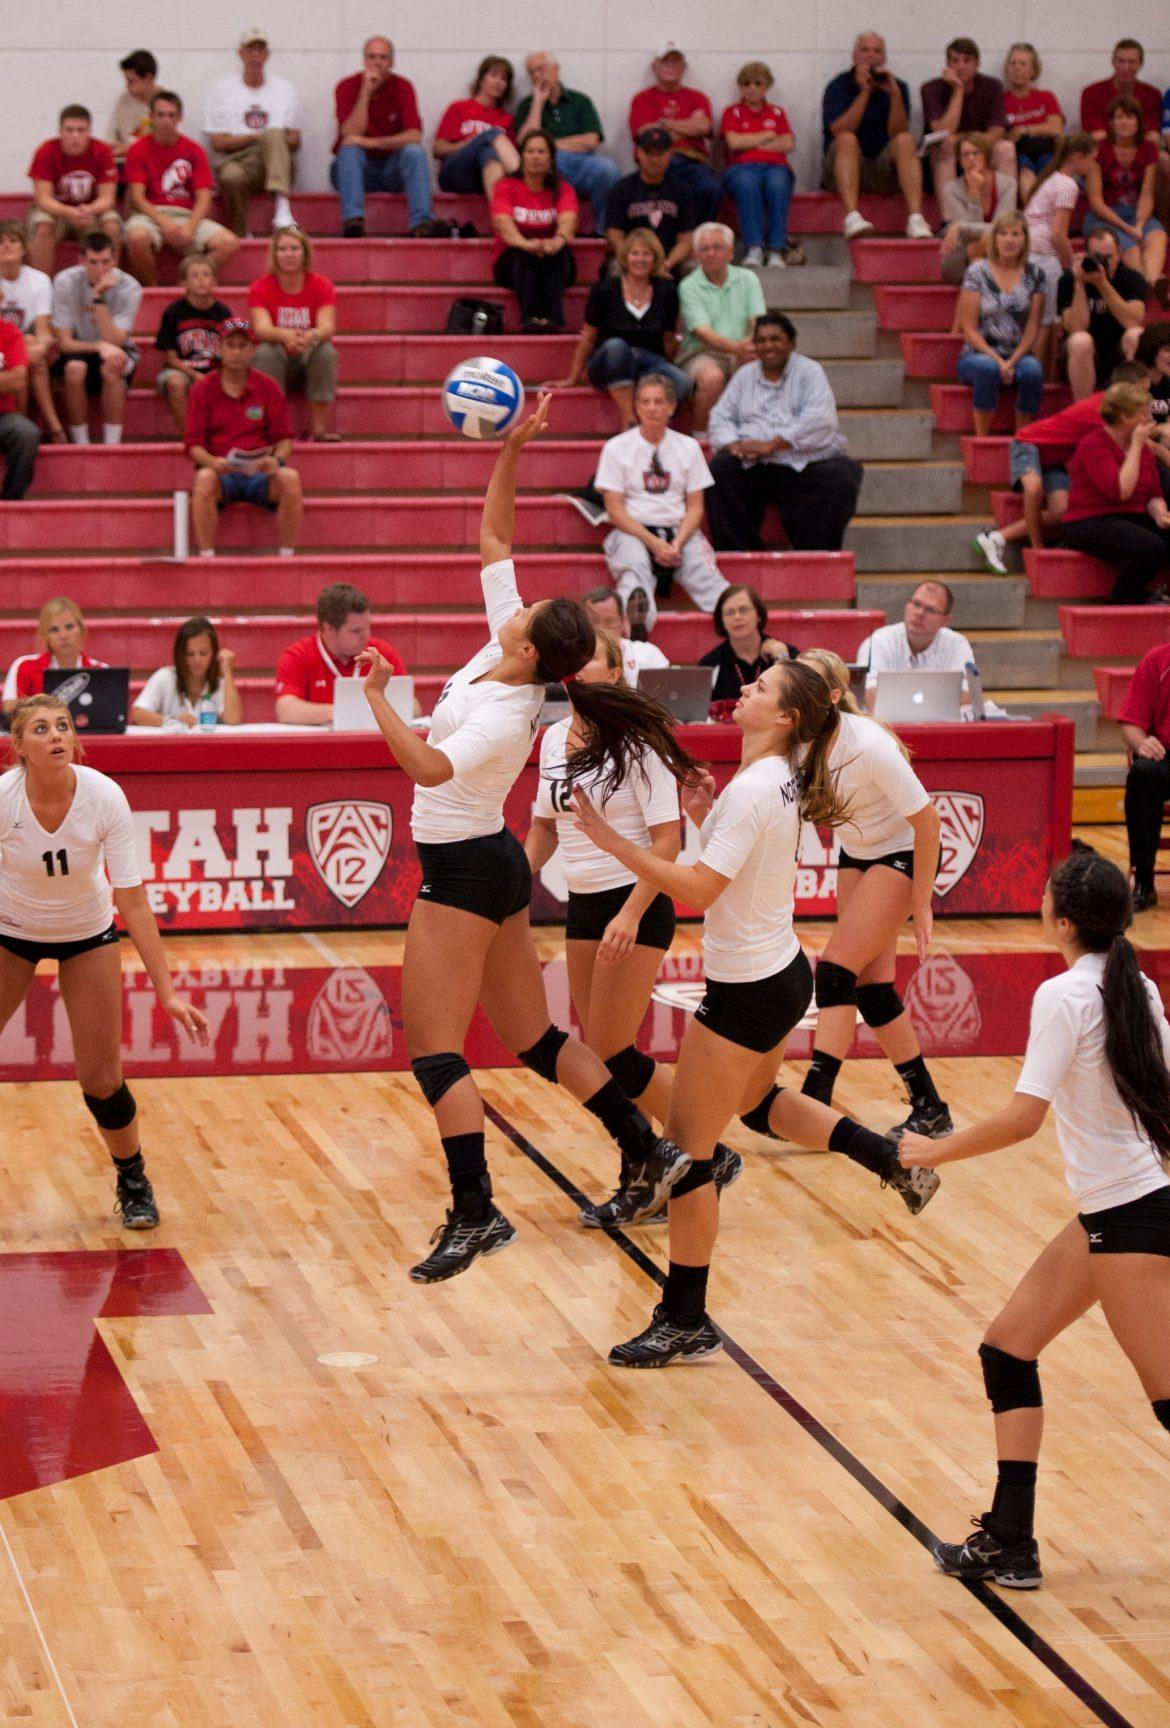 The Matadors, pictured here during one of their matches at the Utah Classic last weekend, will look to come out winners at Sacramento State. Courtesy of Julian Gomez/Daily Utah Chronicle.